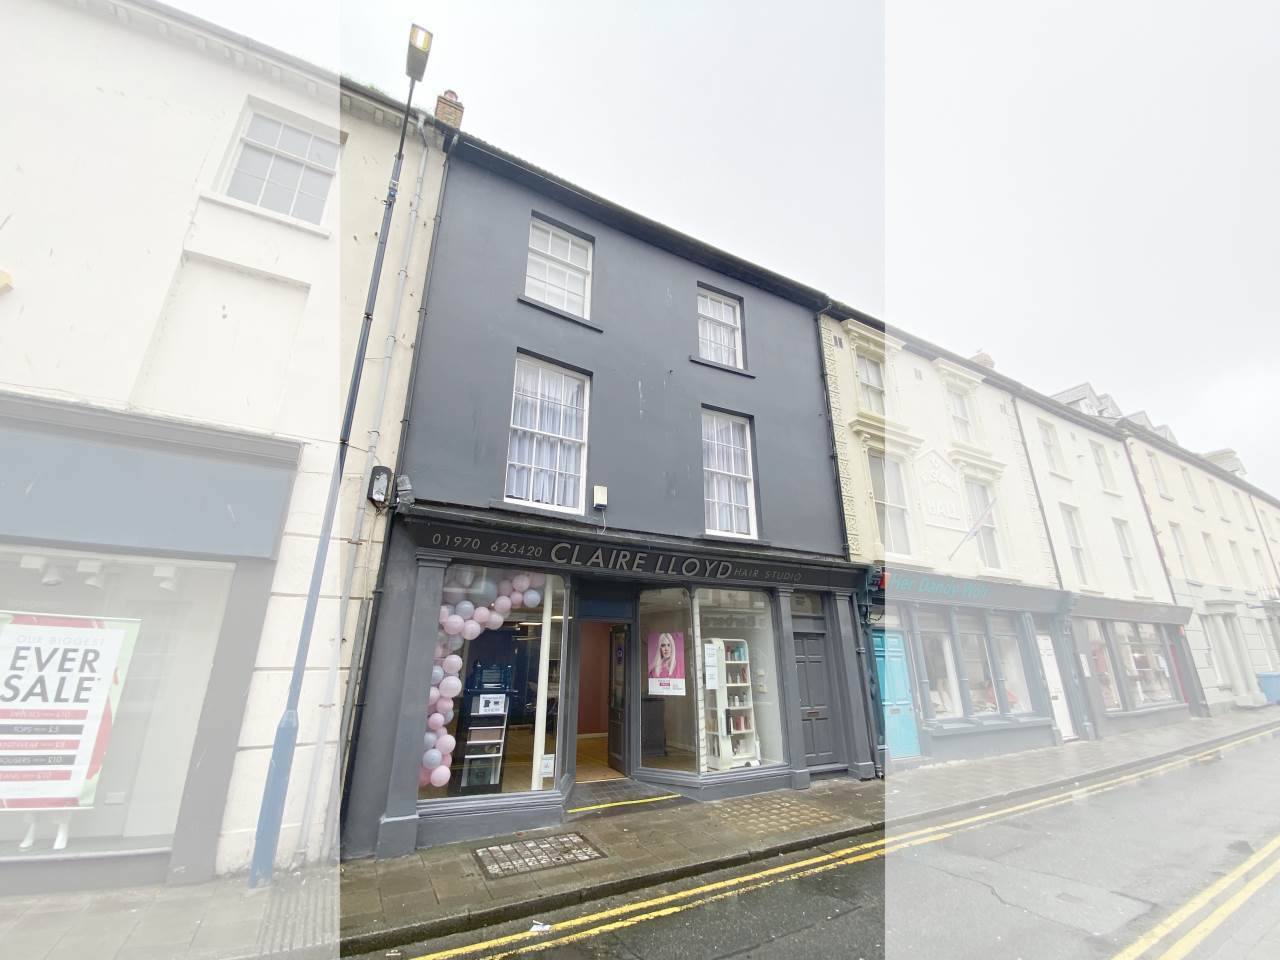 1 bed house / flat share to rent in Market Street, Aberystwyth - Property Image 1